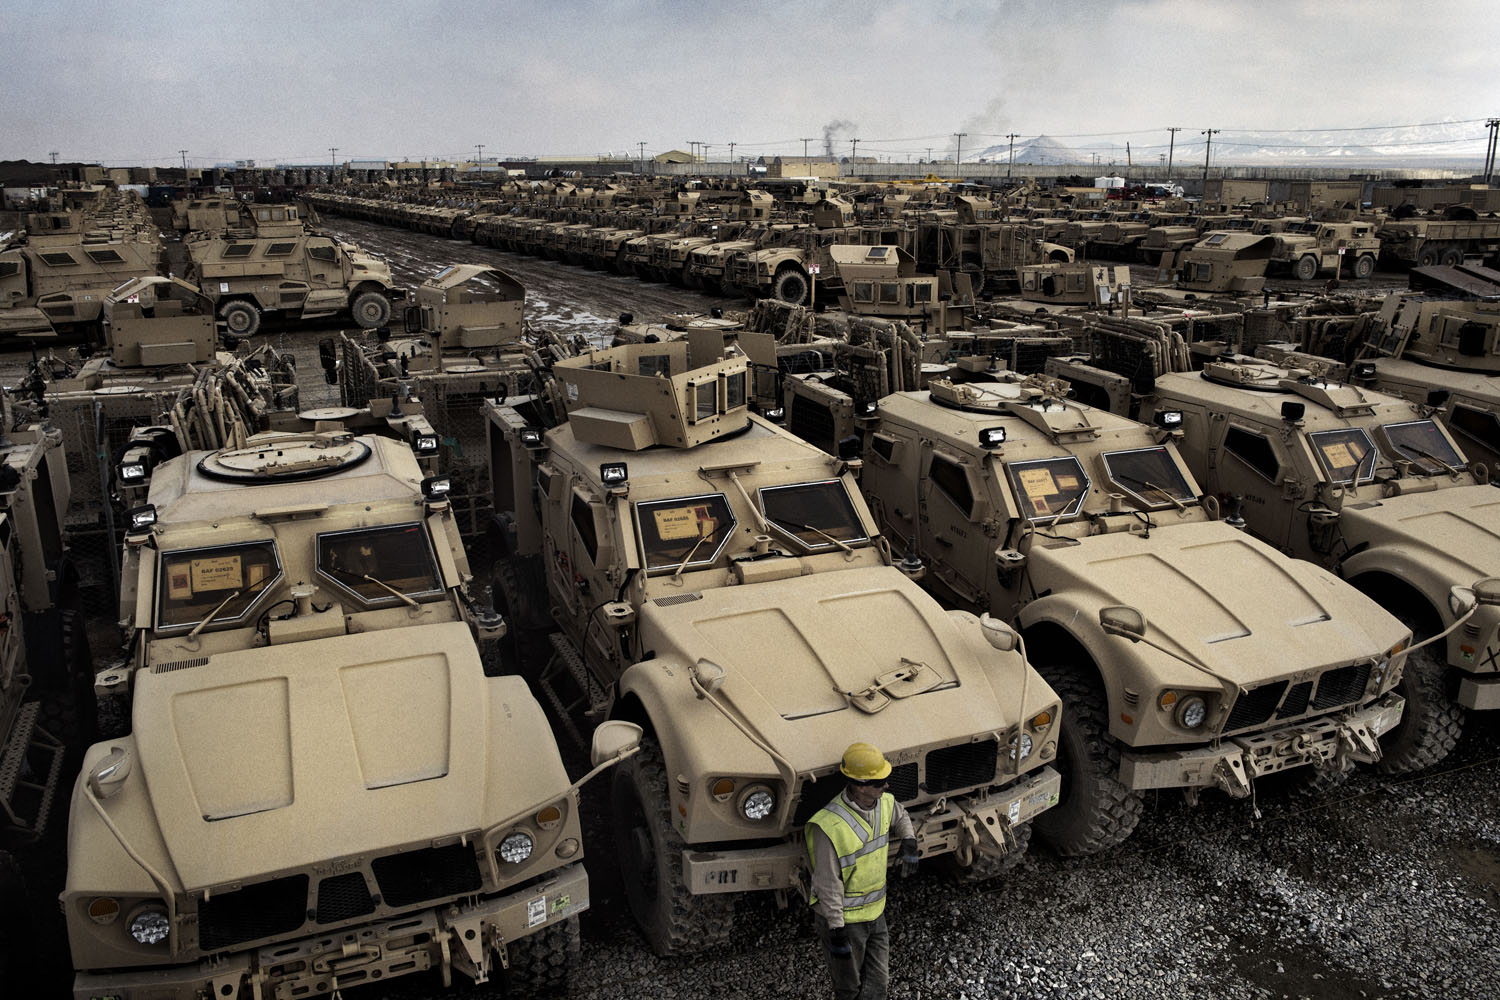 Rows of armored combat vehicles are staged in a yard at Bagram, waiting for shipment back to the United States.                                Logistics units at Bagram can ship nearly 500 vehicles every month. Within two weeks, they say, this yard will have been emptied and refilled with more vehicles awaiting transport home. With most U.S. forces set to depart Afghanistan by the end of 2014, retrograde, the military's term for the removal of combat equipment from the country, has become a top mission.